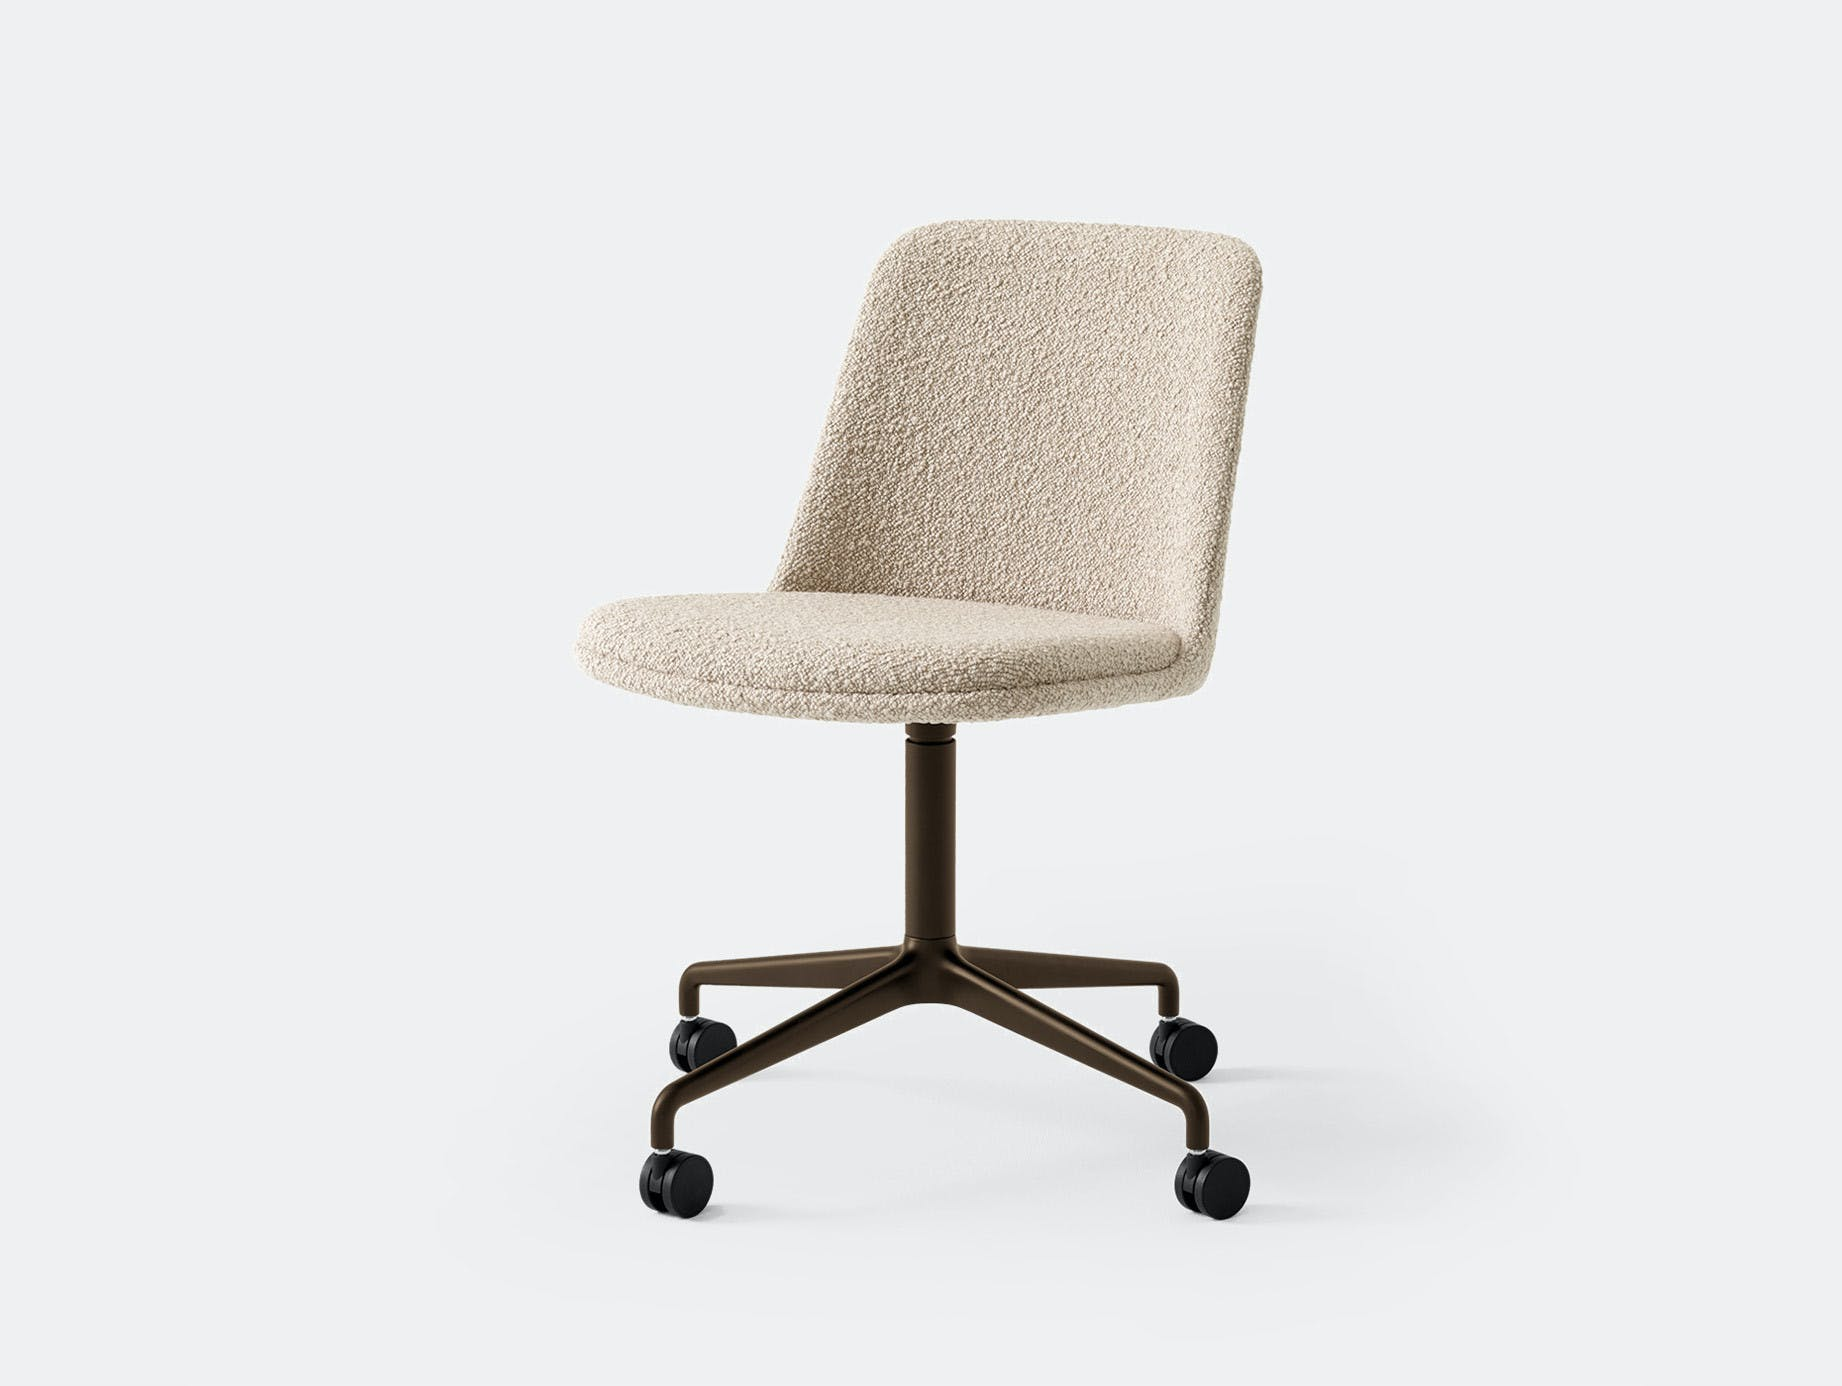 Andtradition rely chair castor base